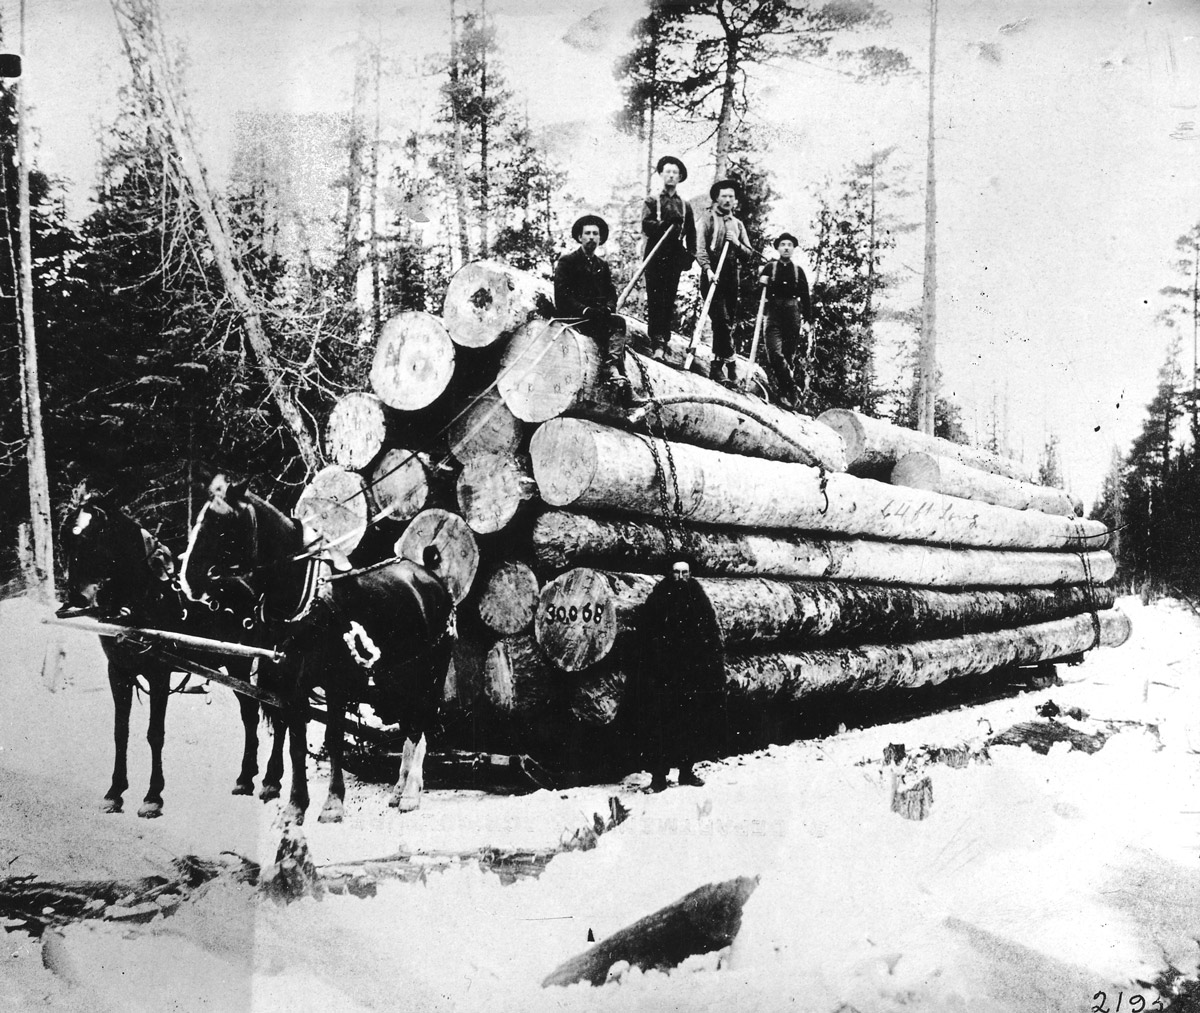 Transporting White Pine Logs on a Sled